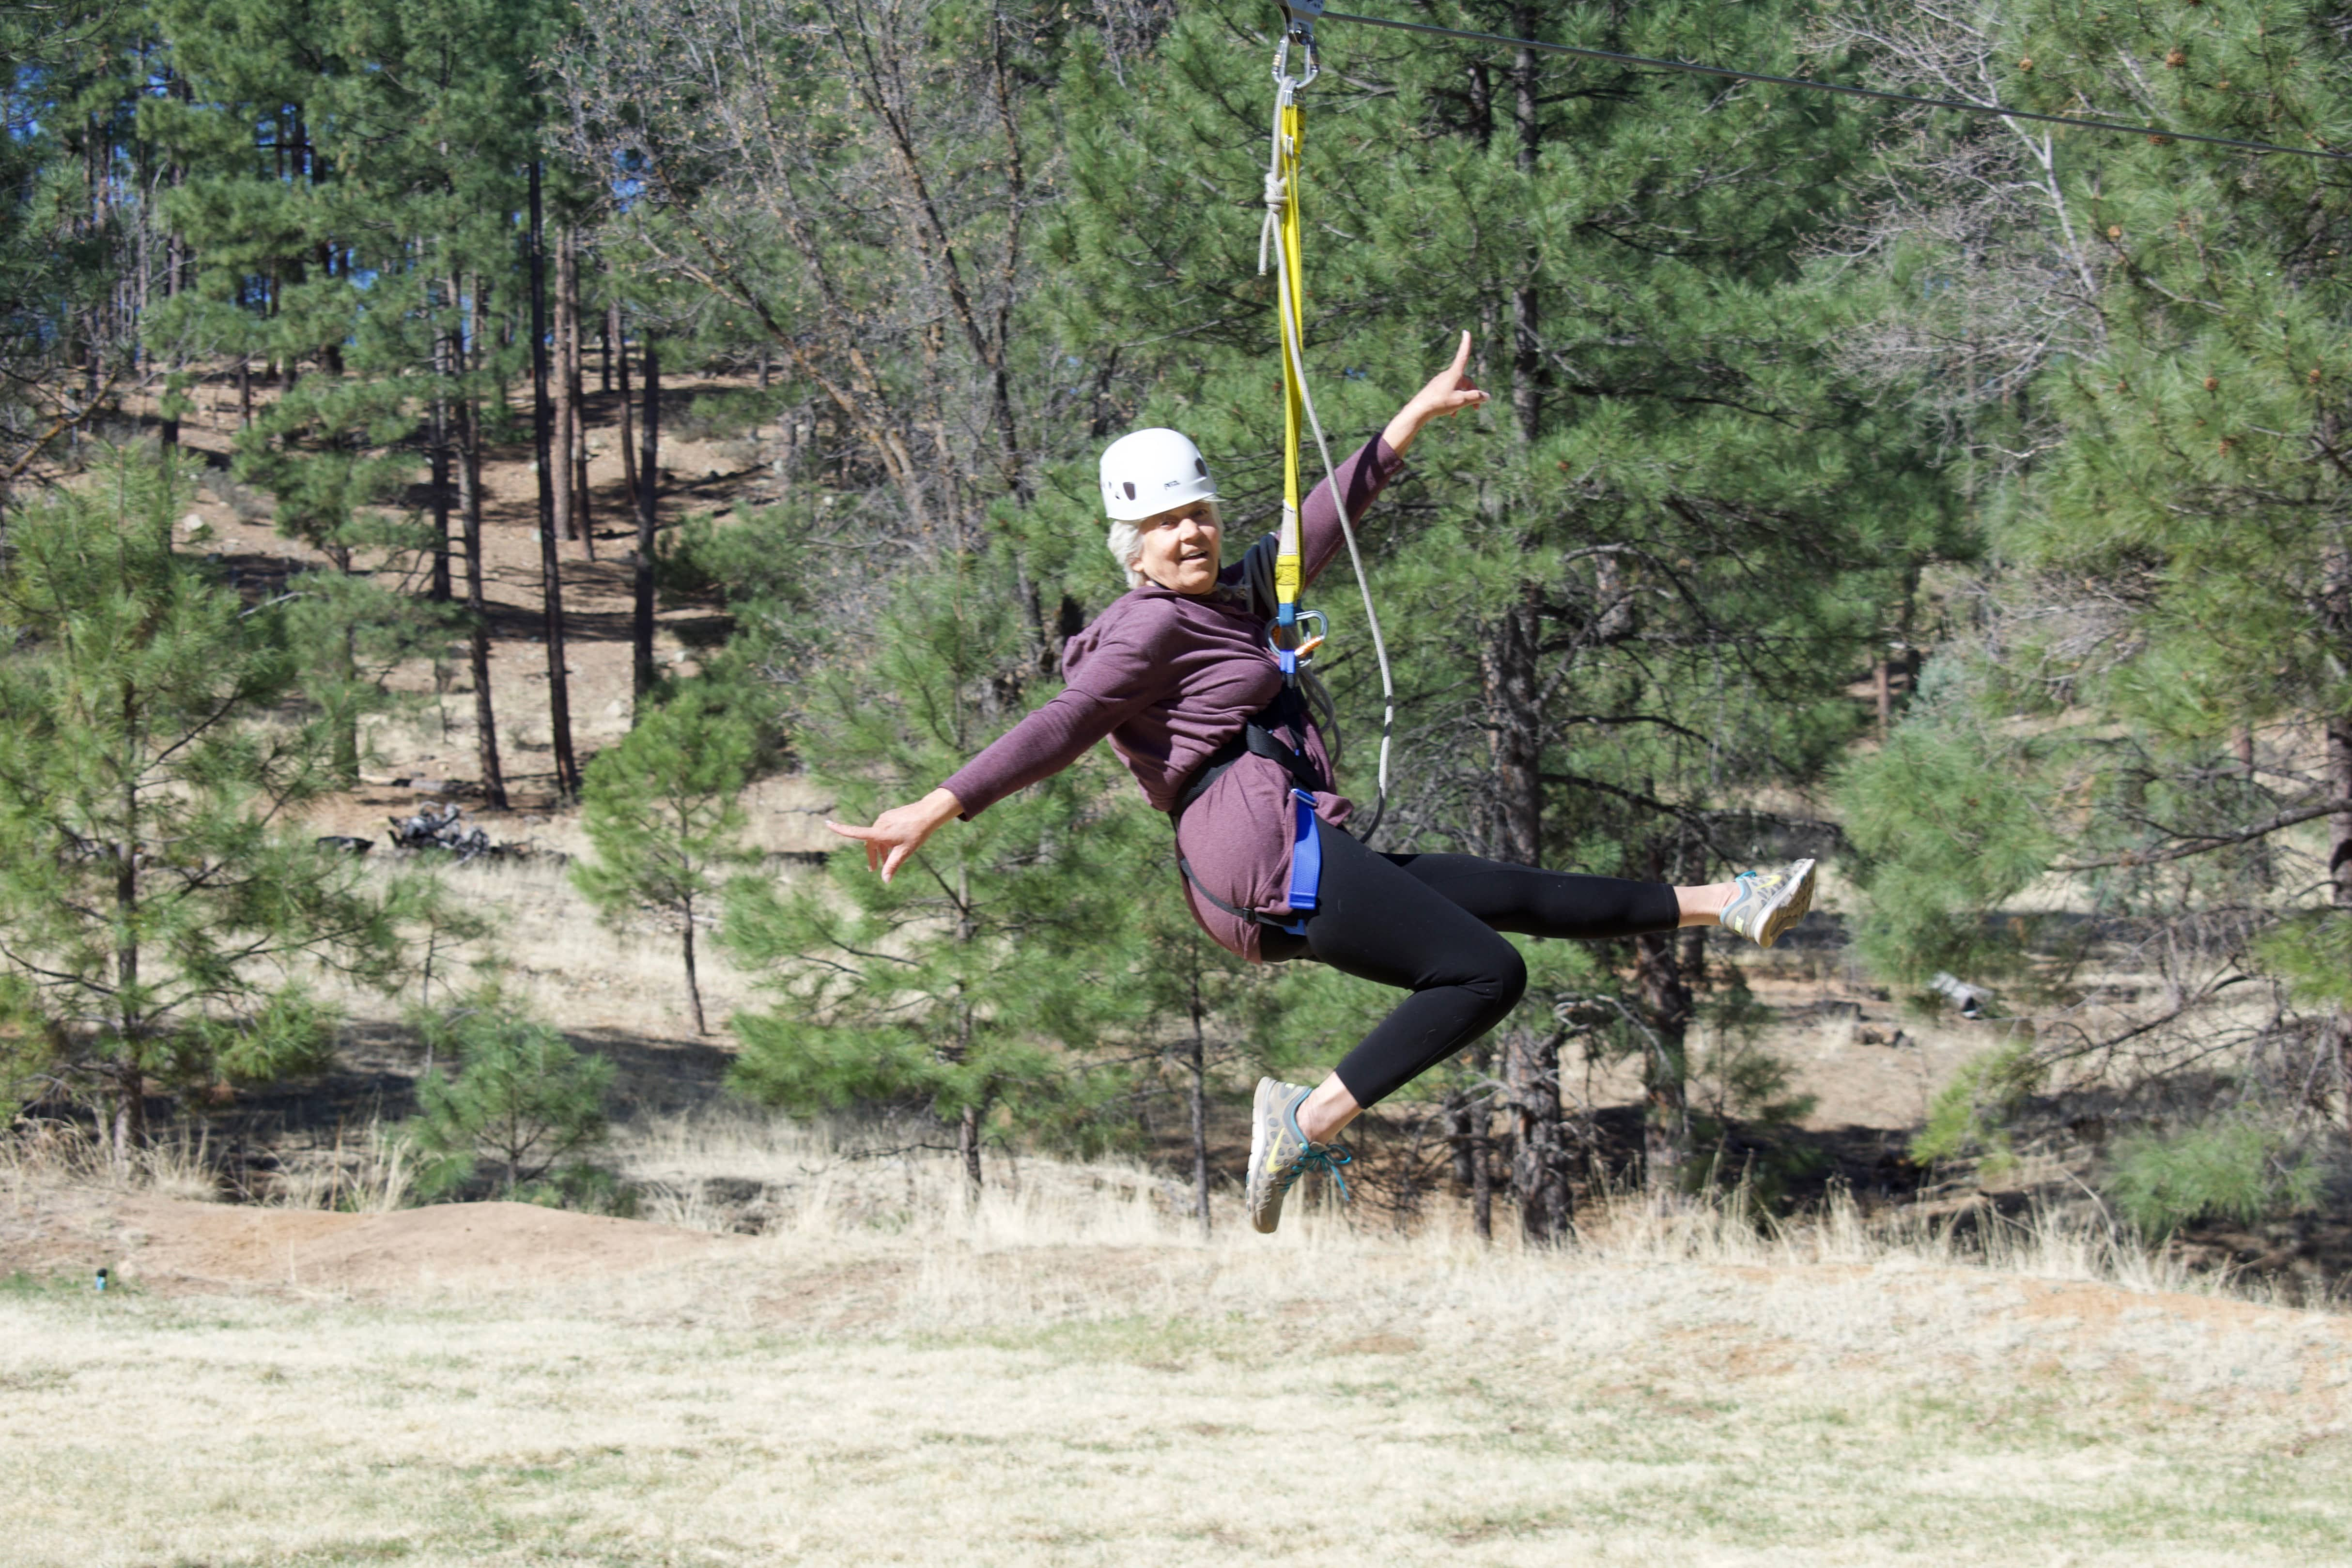 Woman going down the zip line